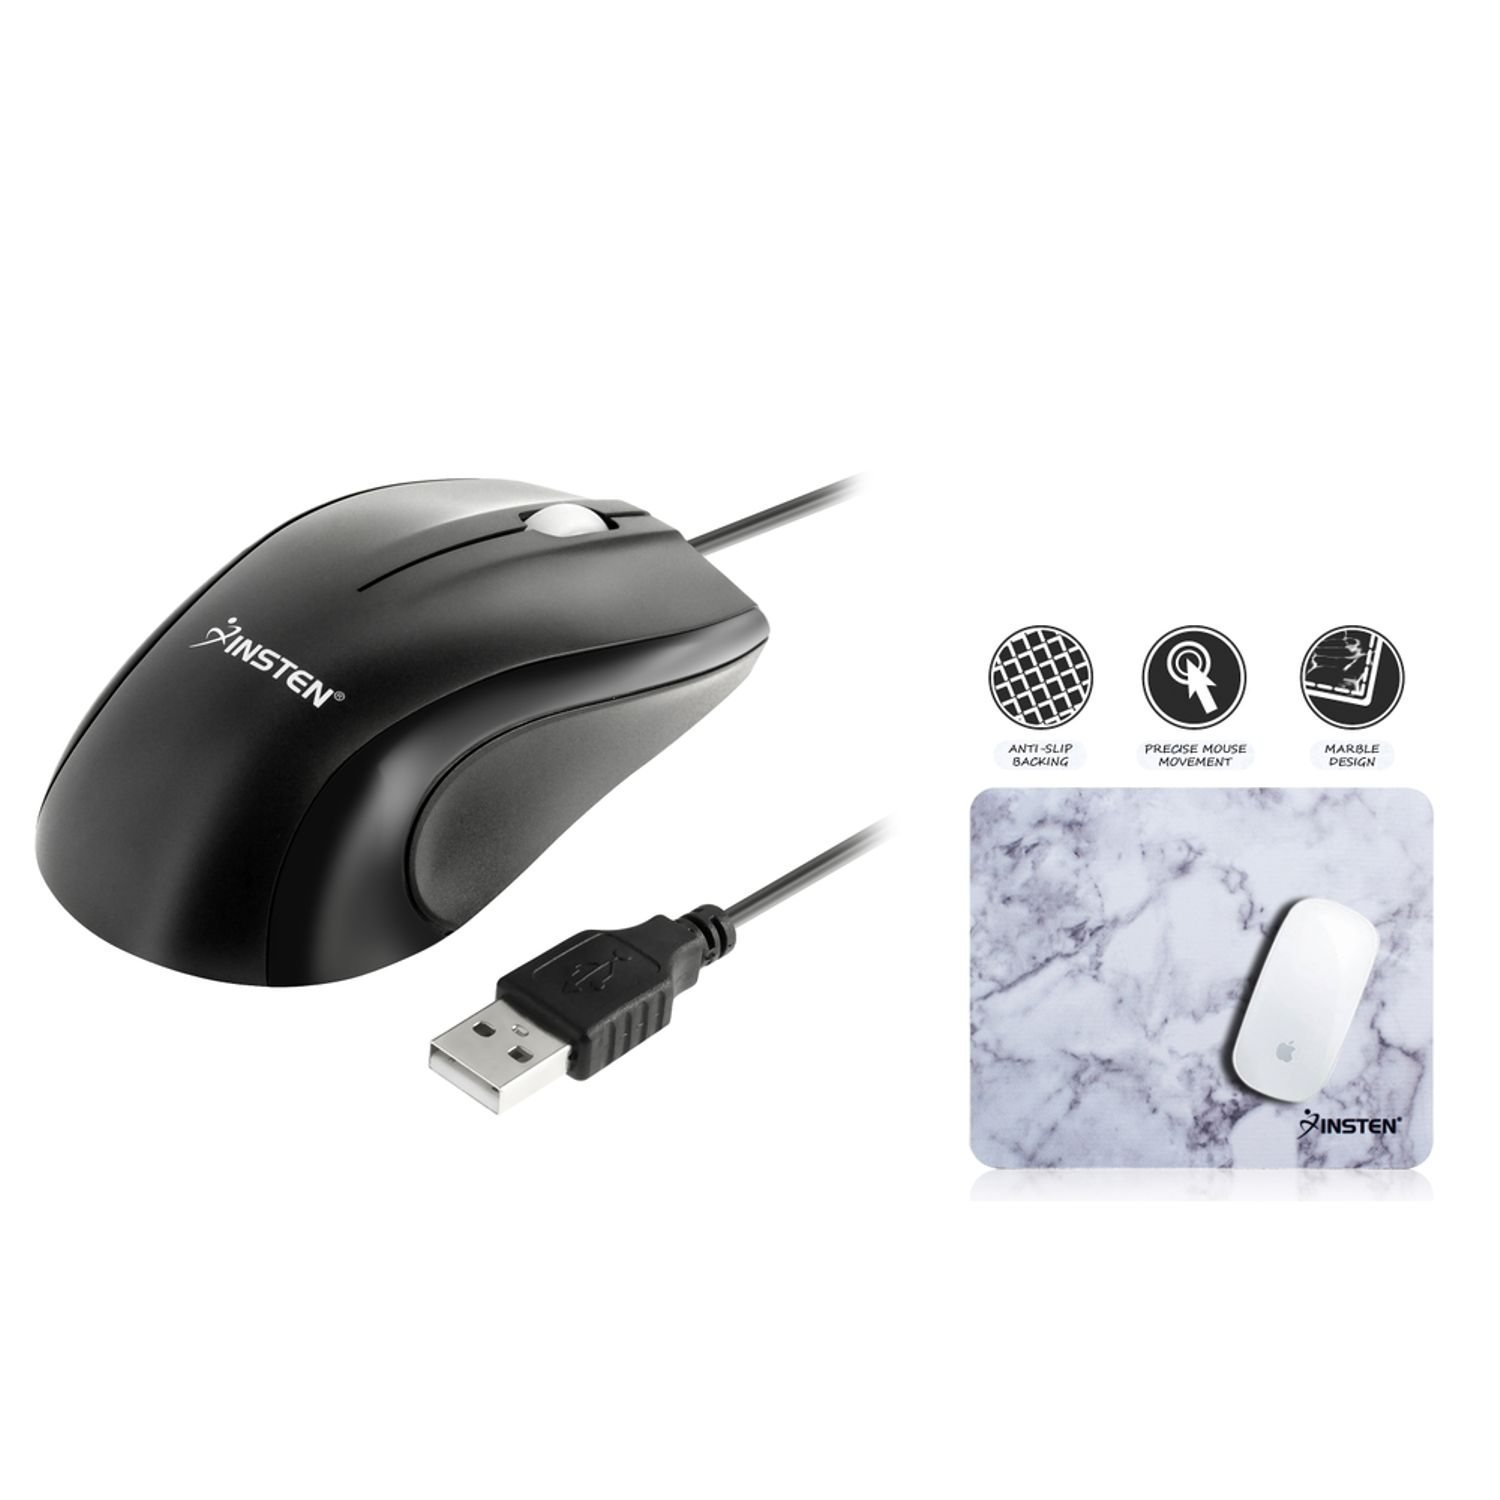 Insten Black USB Optical Scroll Wheel Mouse + White Marble Mouse Pad